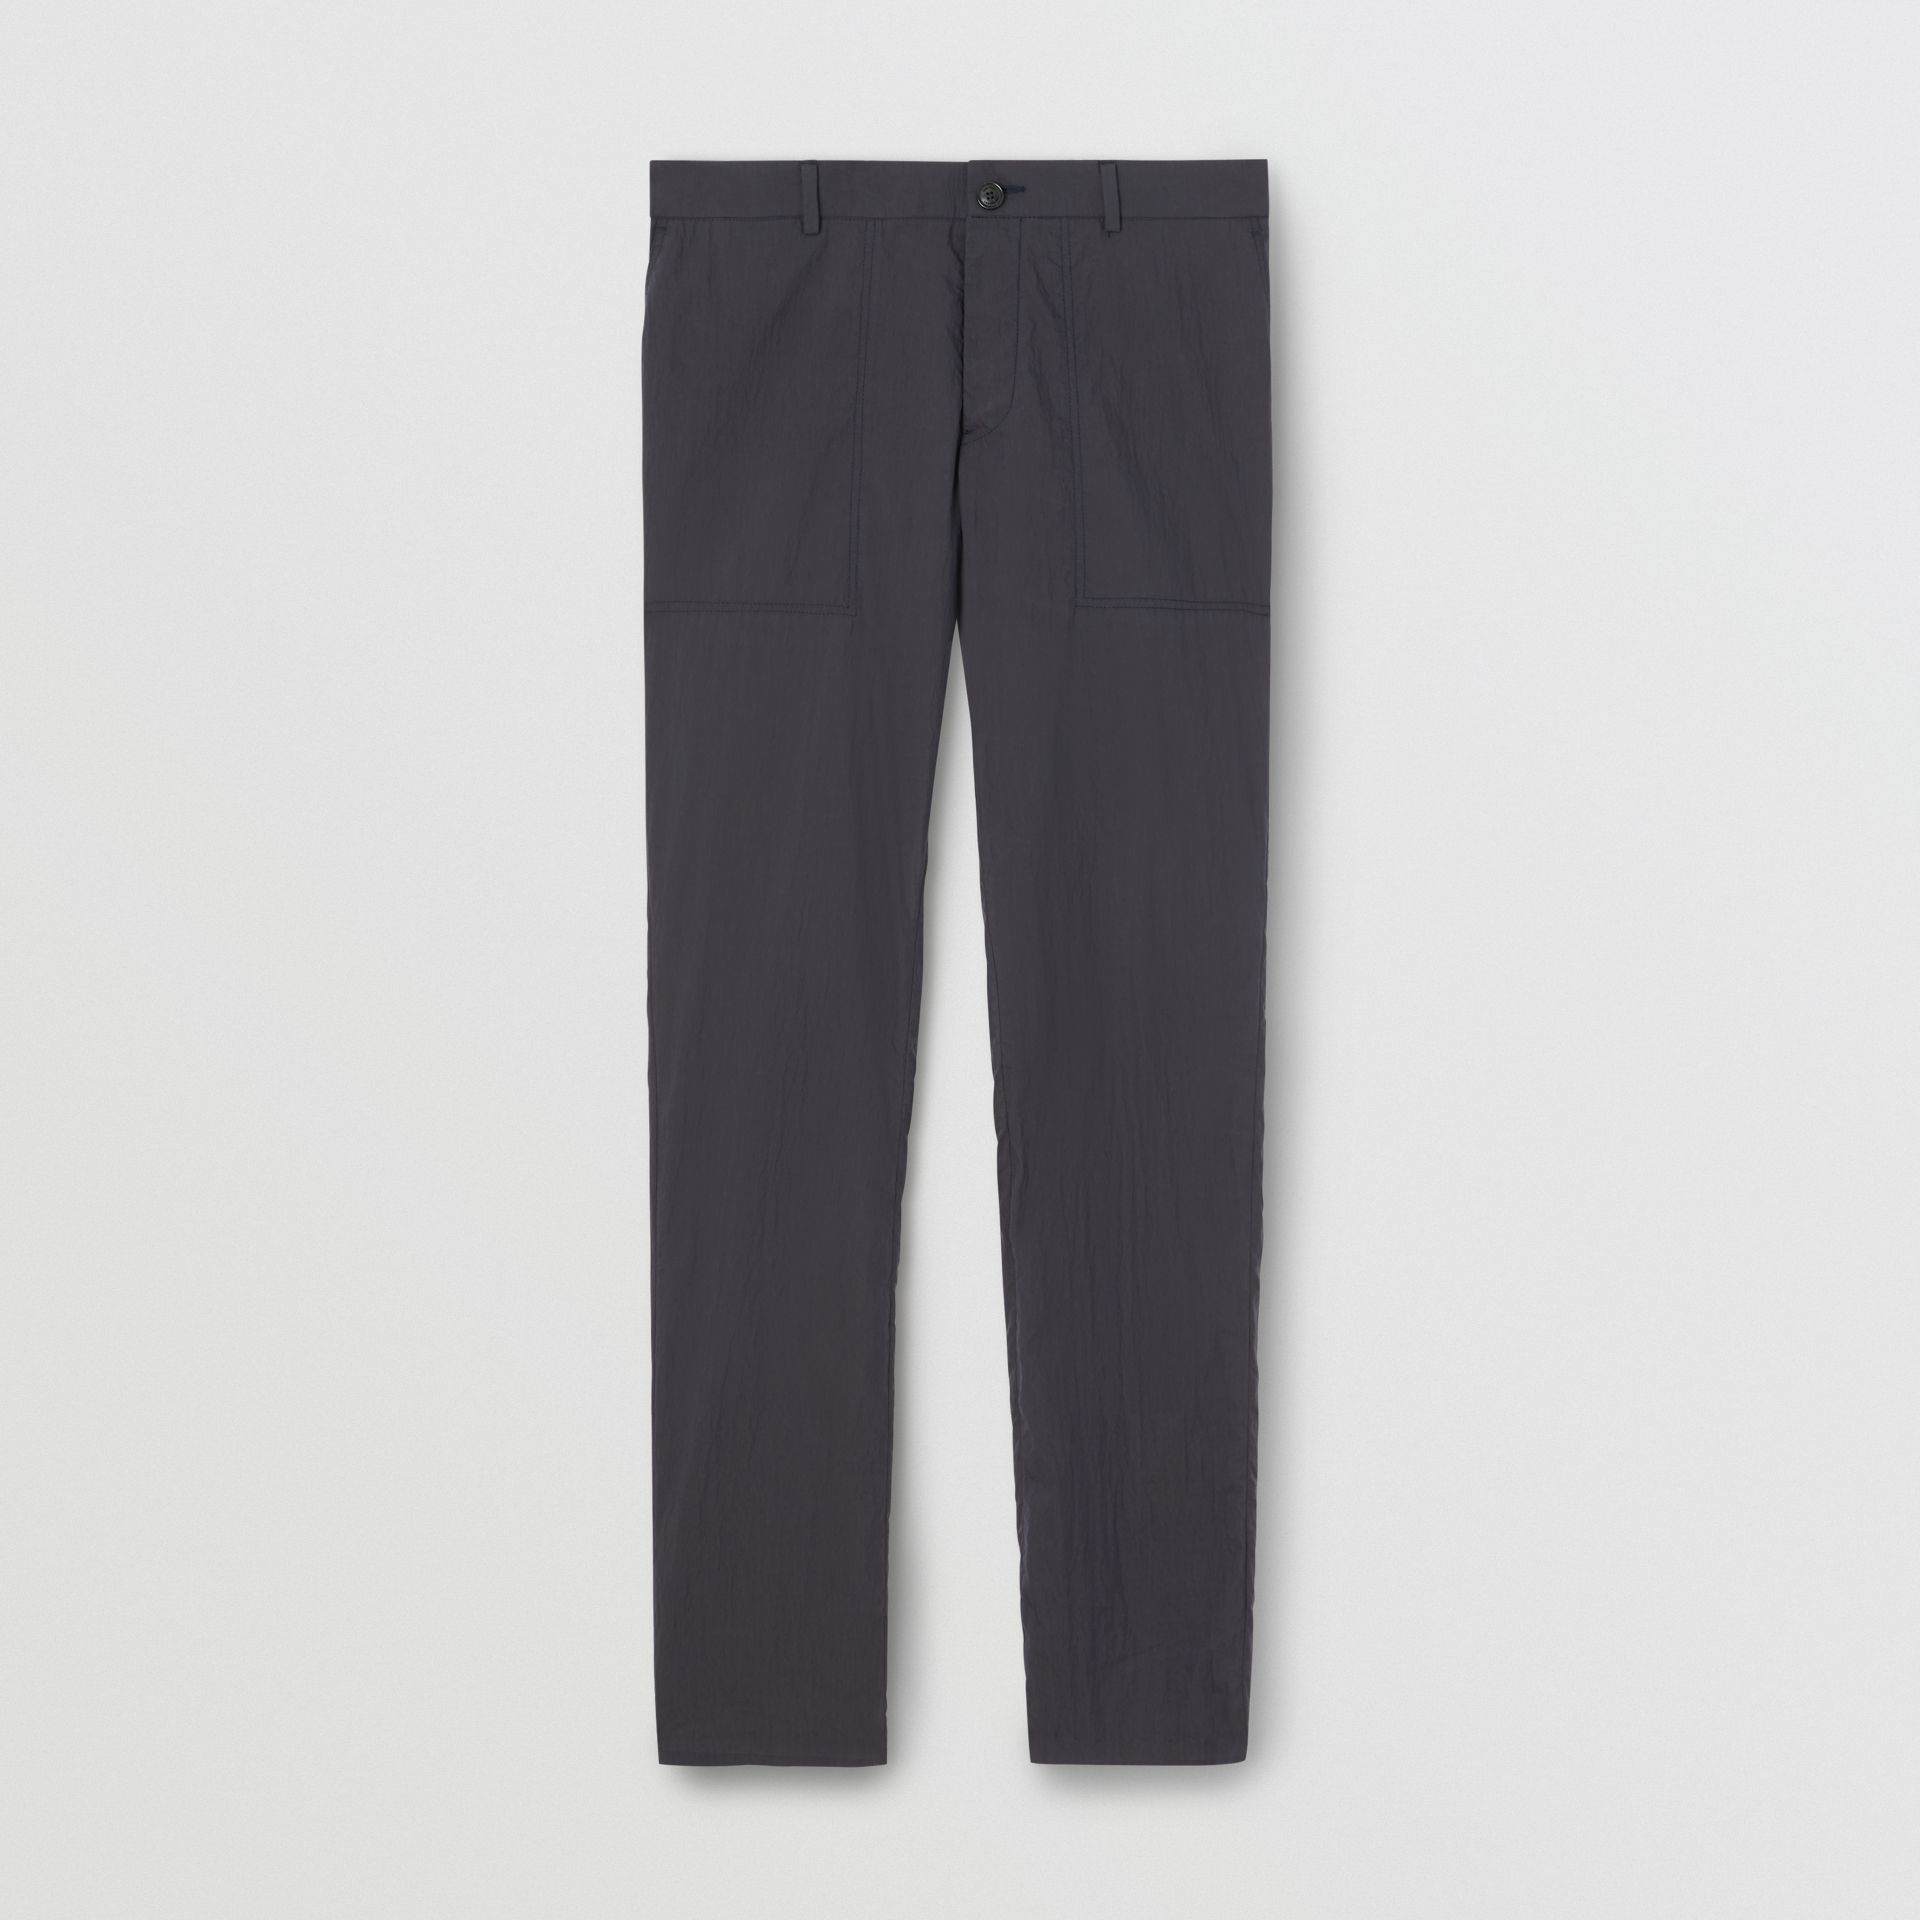 Classic Fit Cotton Blend Tailored Trousers in Navy - Men | Burberry Australia - gallery image 3